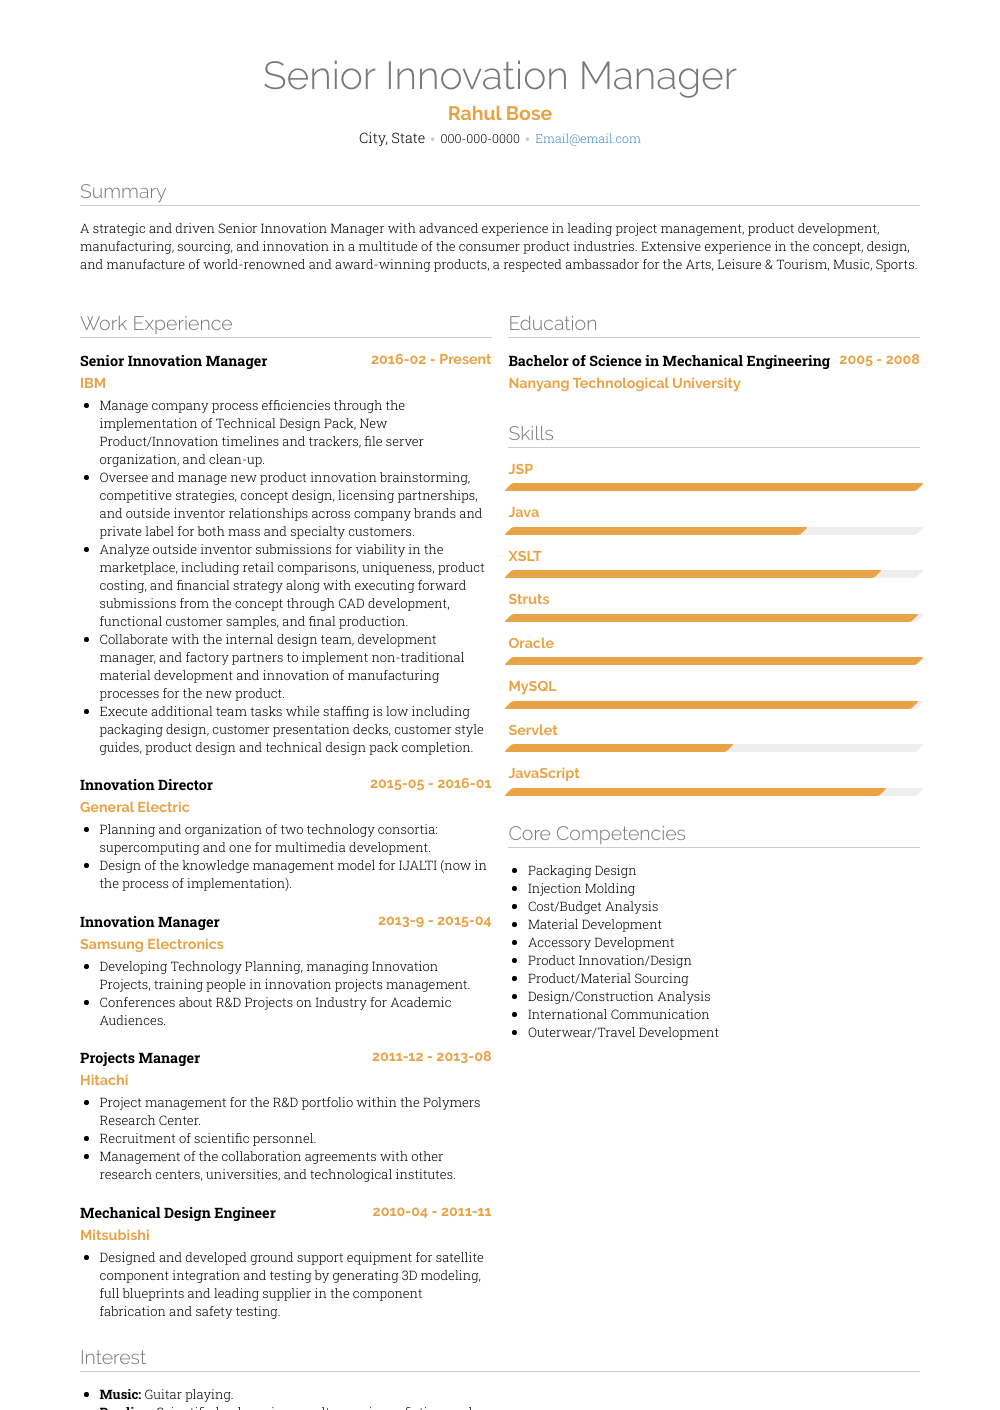 linkedin cv resume builder